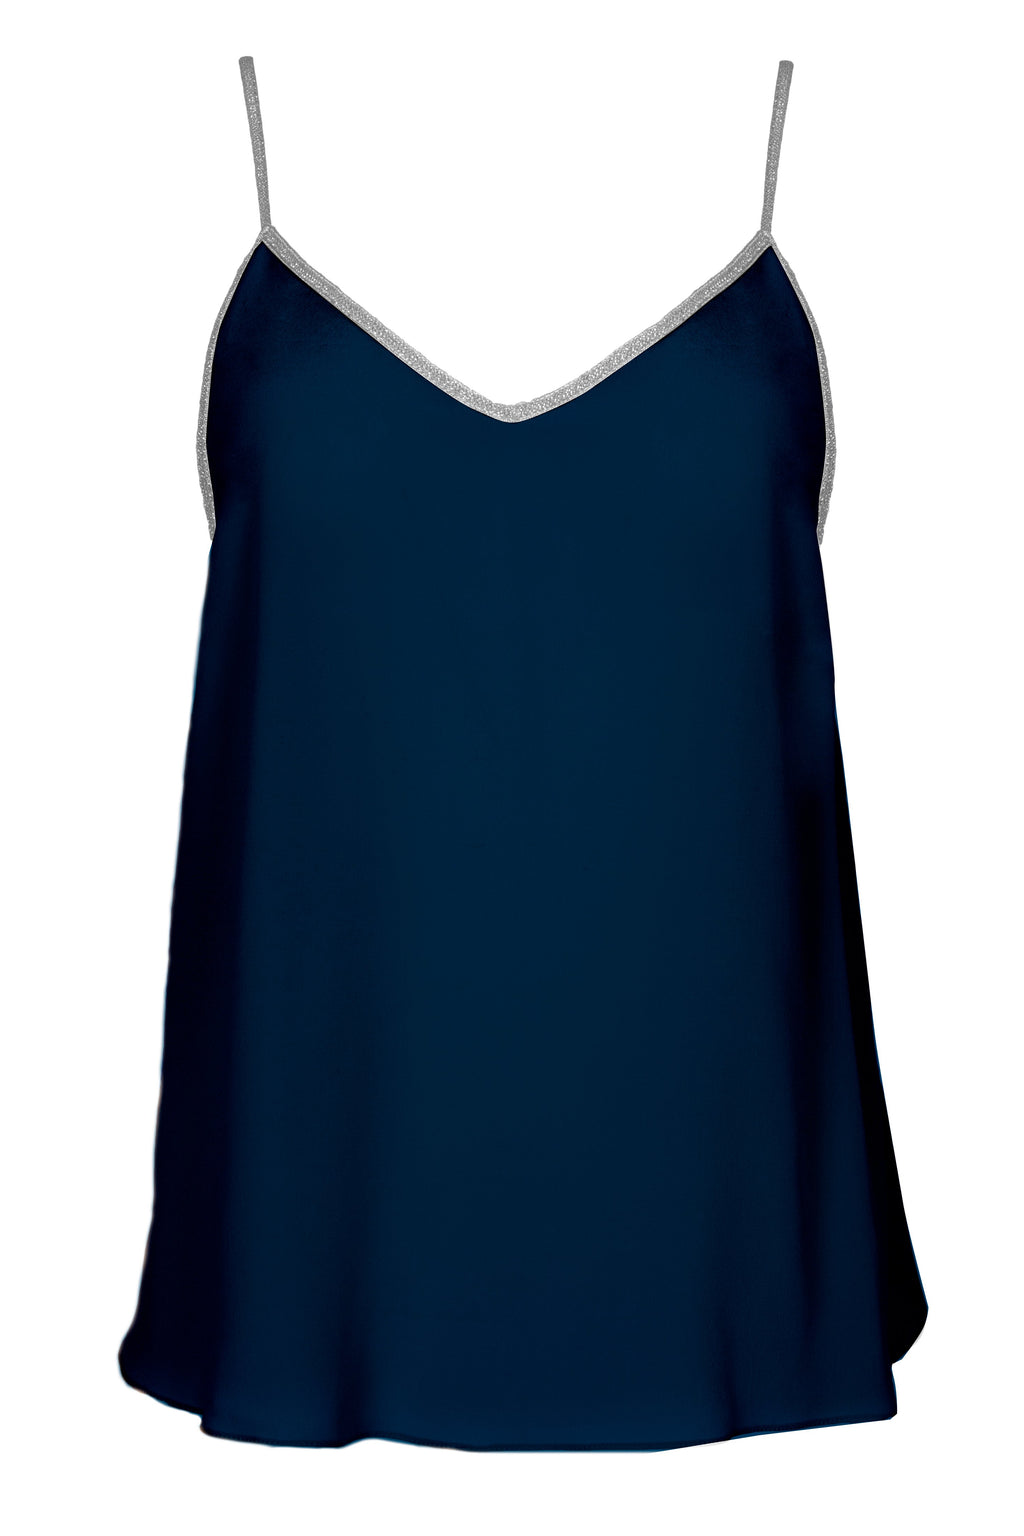 Rhodes silk camisole in midnight